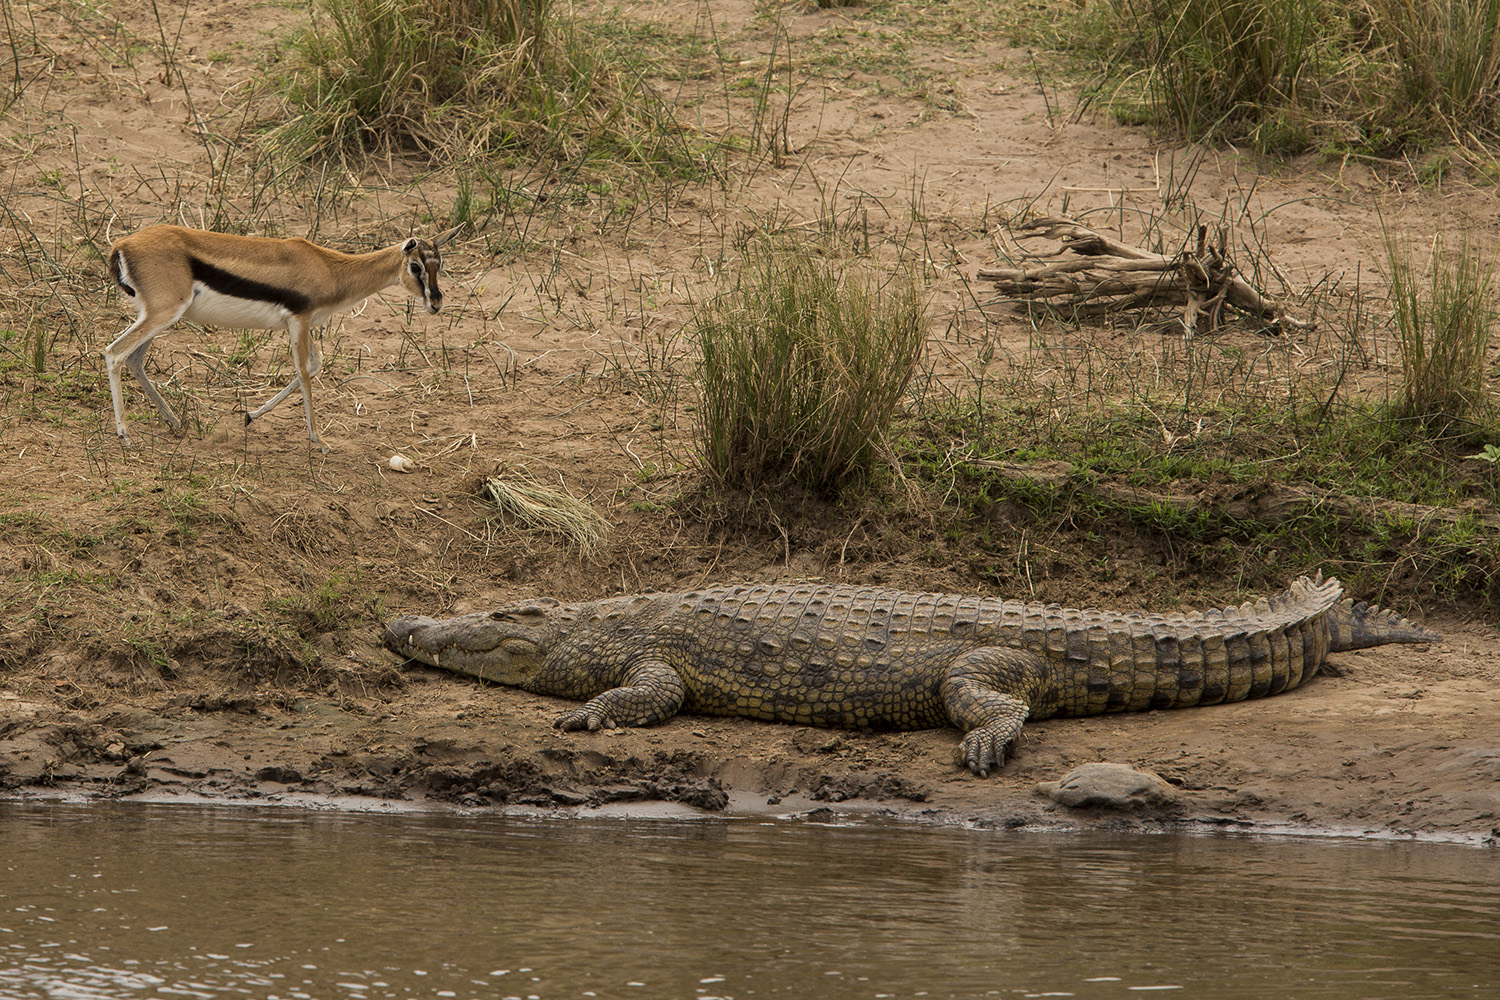 The great migration Crocodile and gazelle